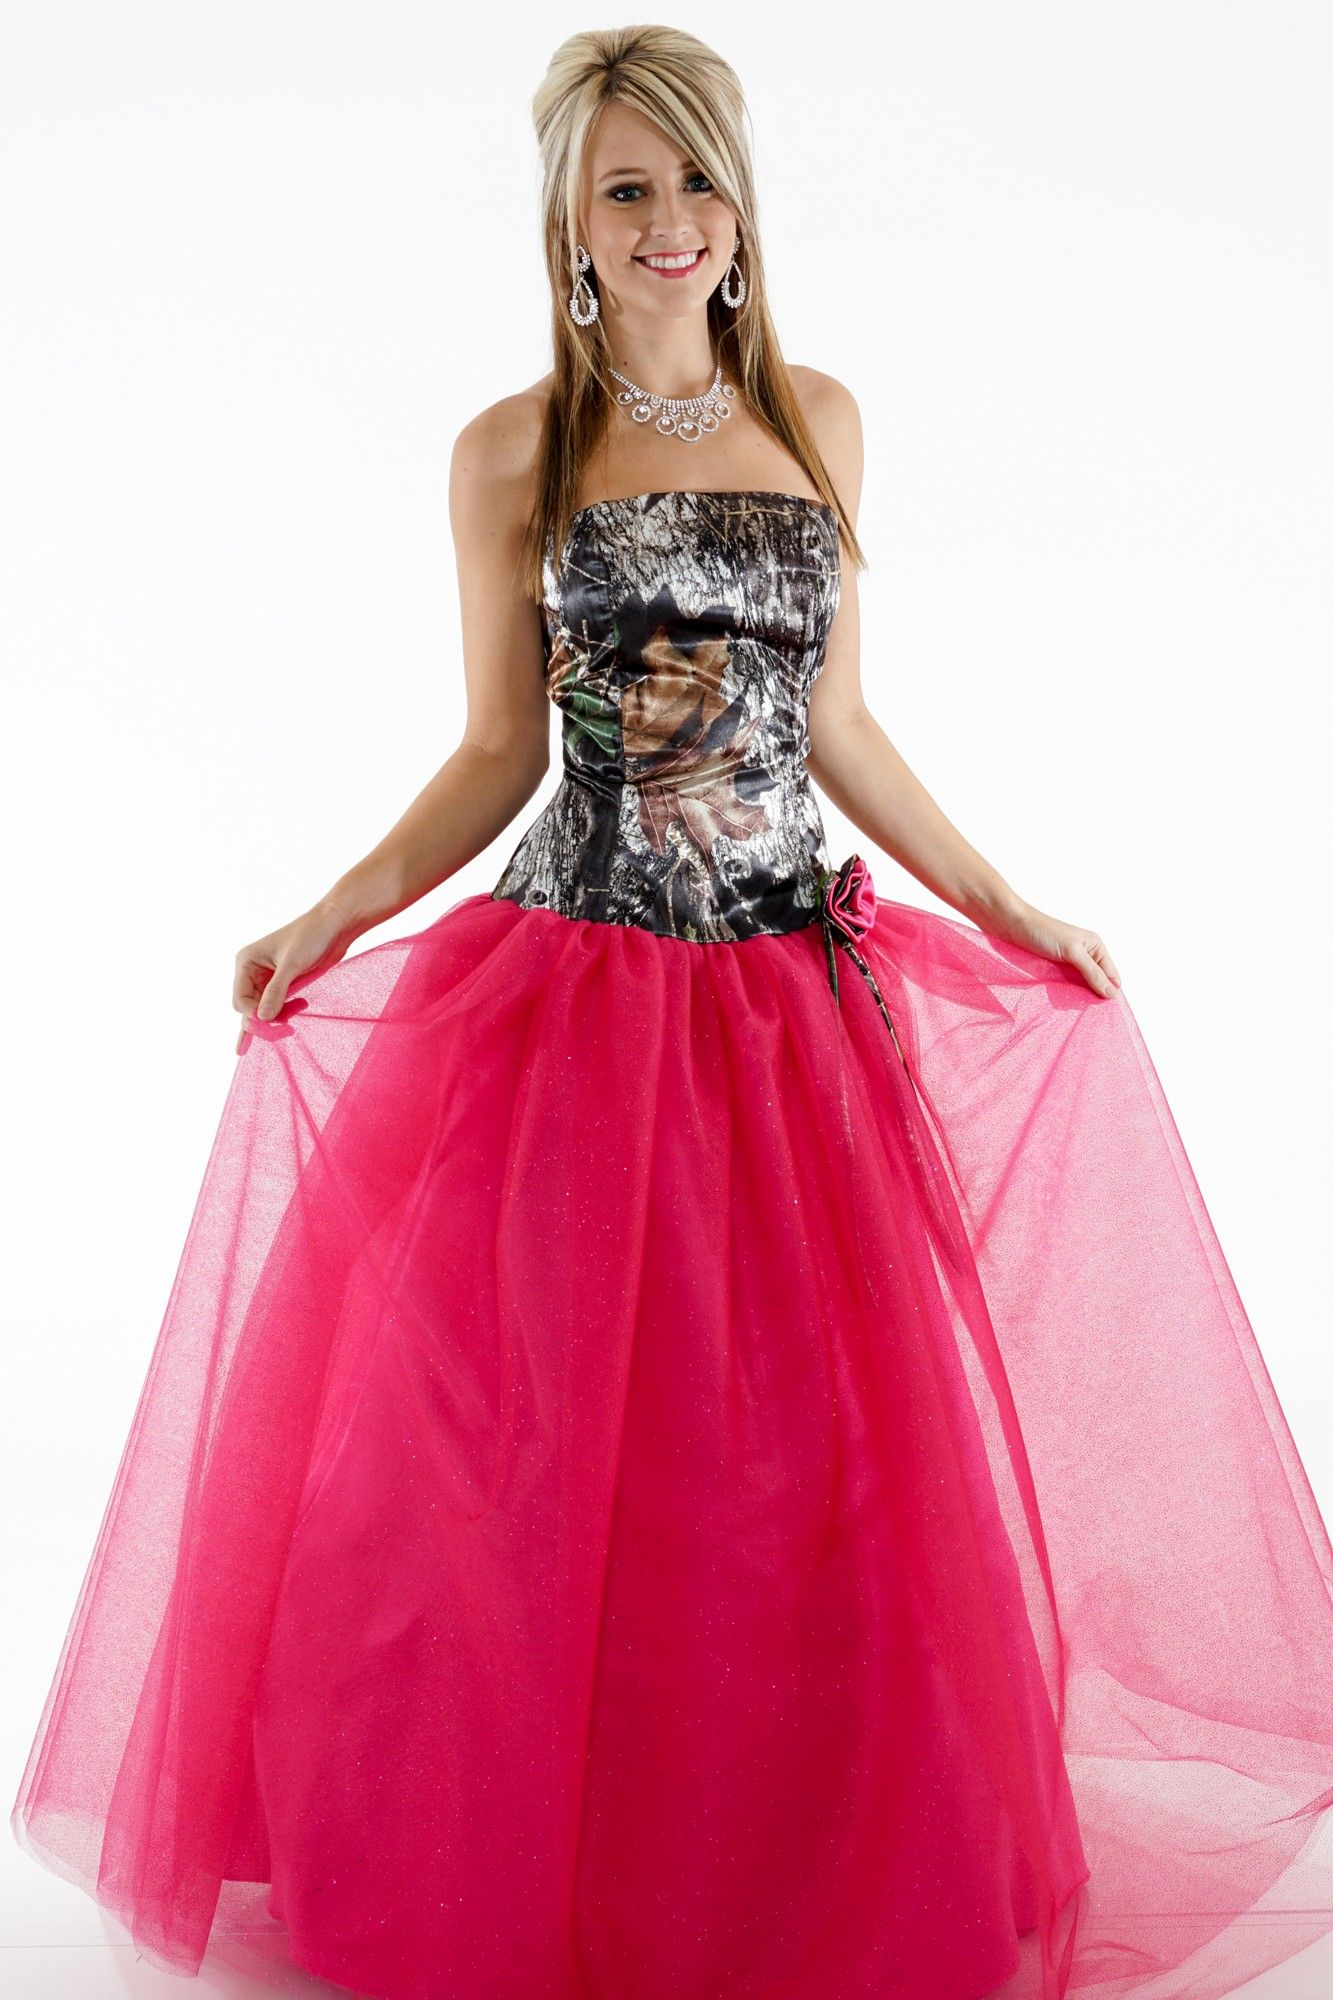 3658GN2R Ballgown with Glitter Net with two color rose